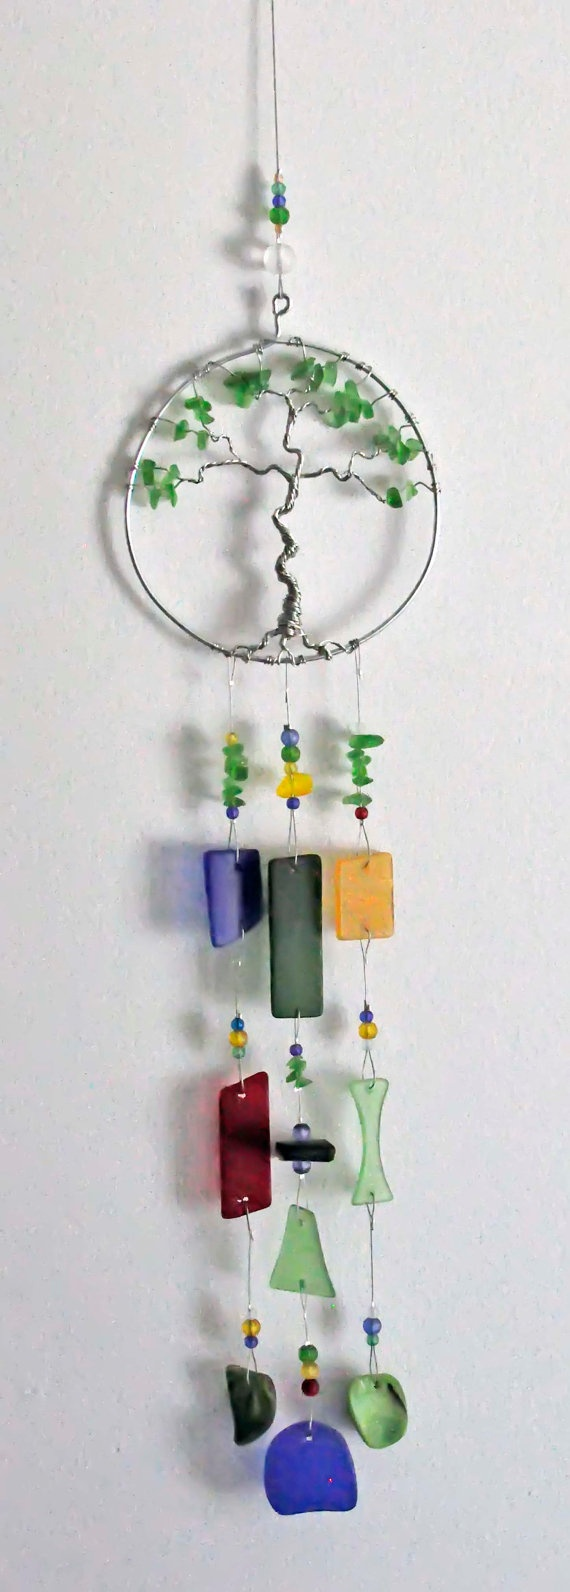 Recycled sea beach glass windchime